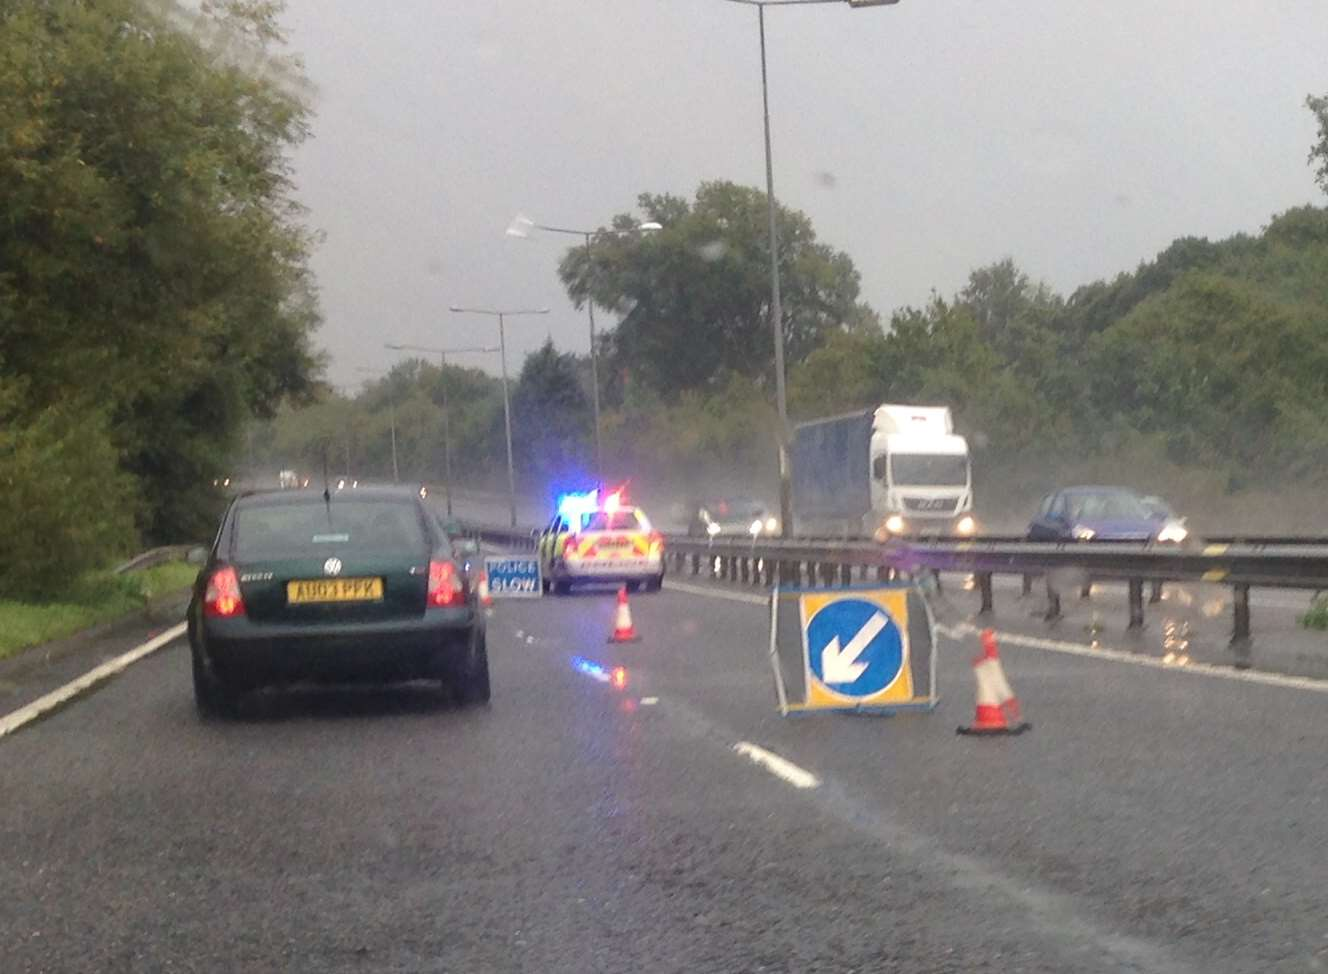 Police slow down traffic on the Thanet Way following crash